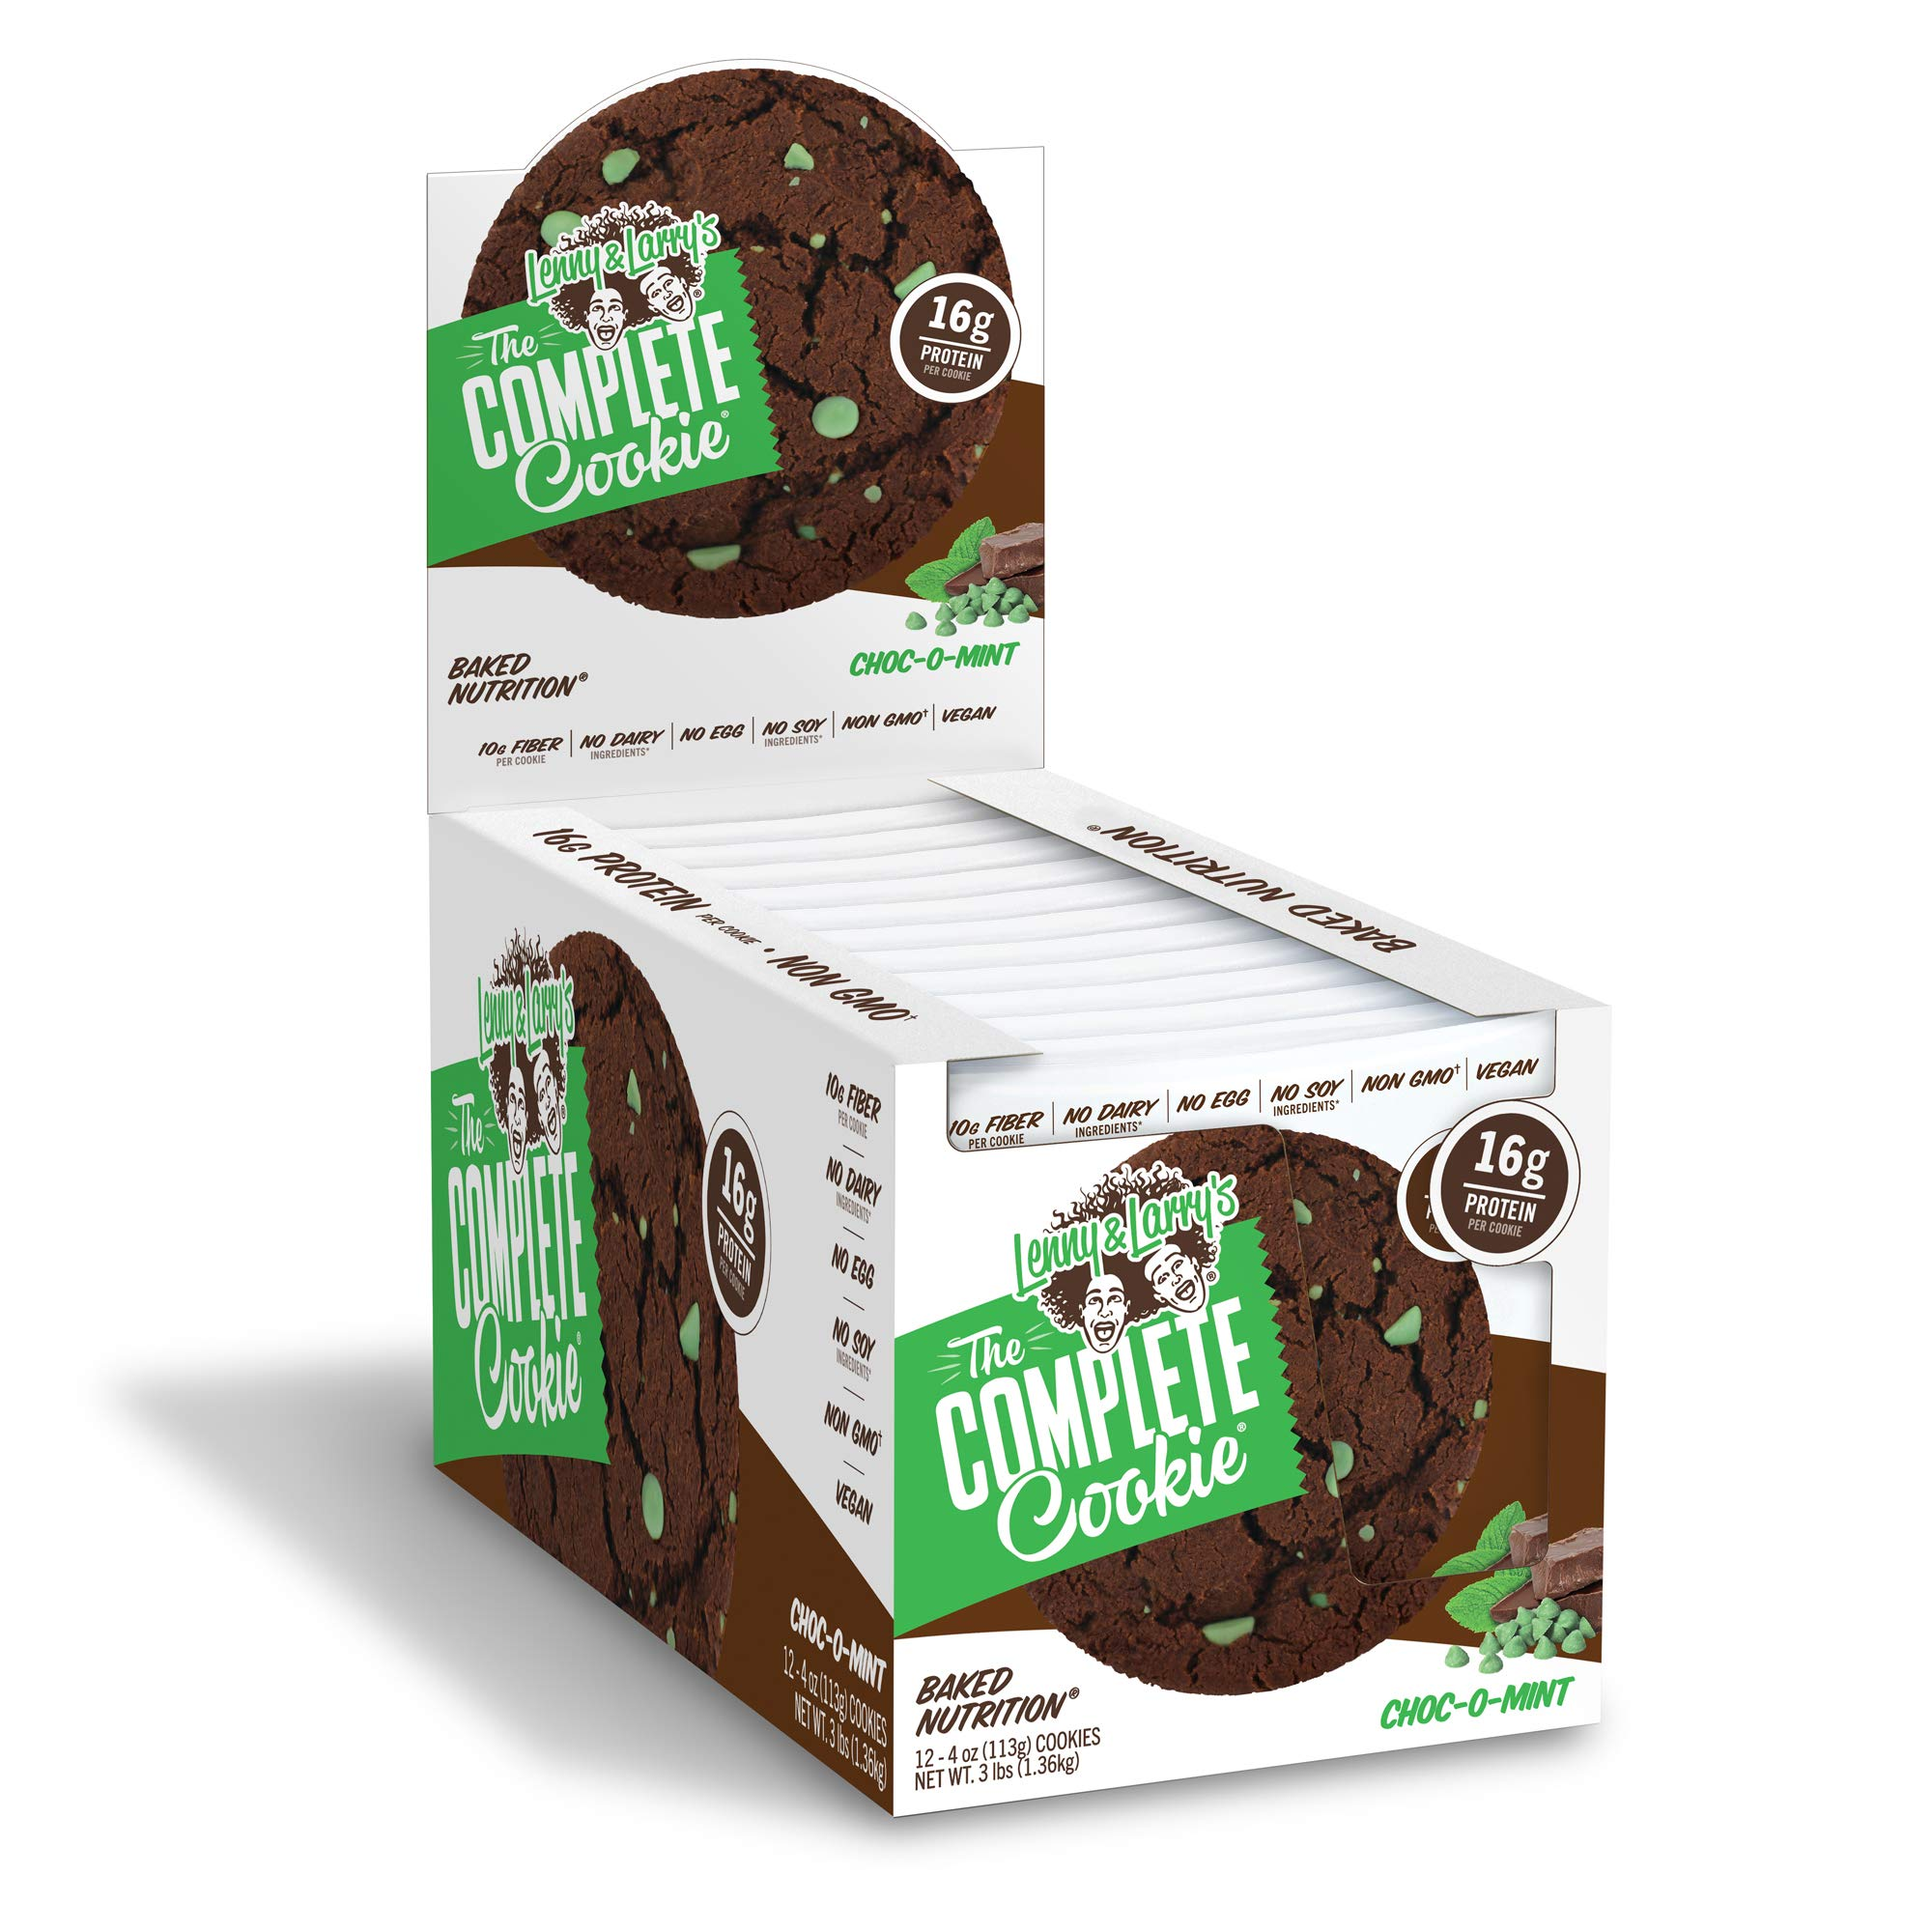 Lenny & Larry's The Complete Cookie, Choc-O-Mint, Soft Baked, 16g Plant Protein, Vegan,4-Ounce Cookies (Pack of 12)